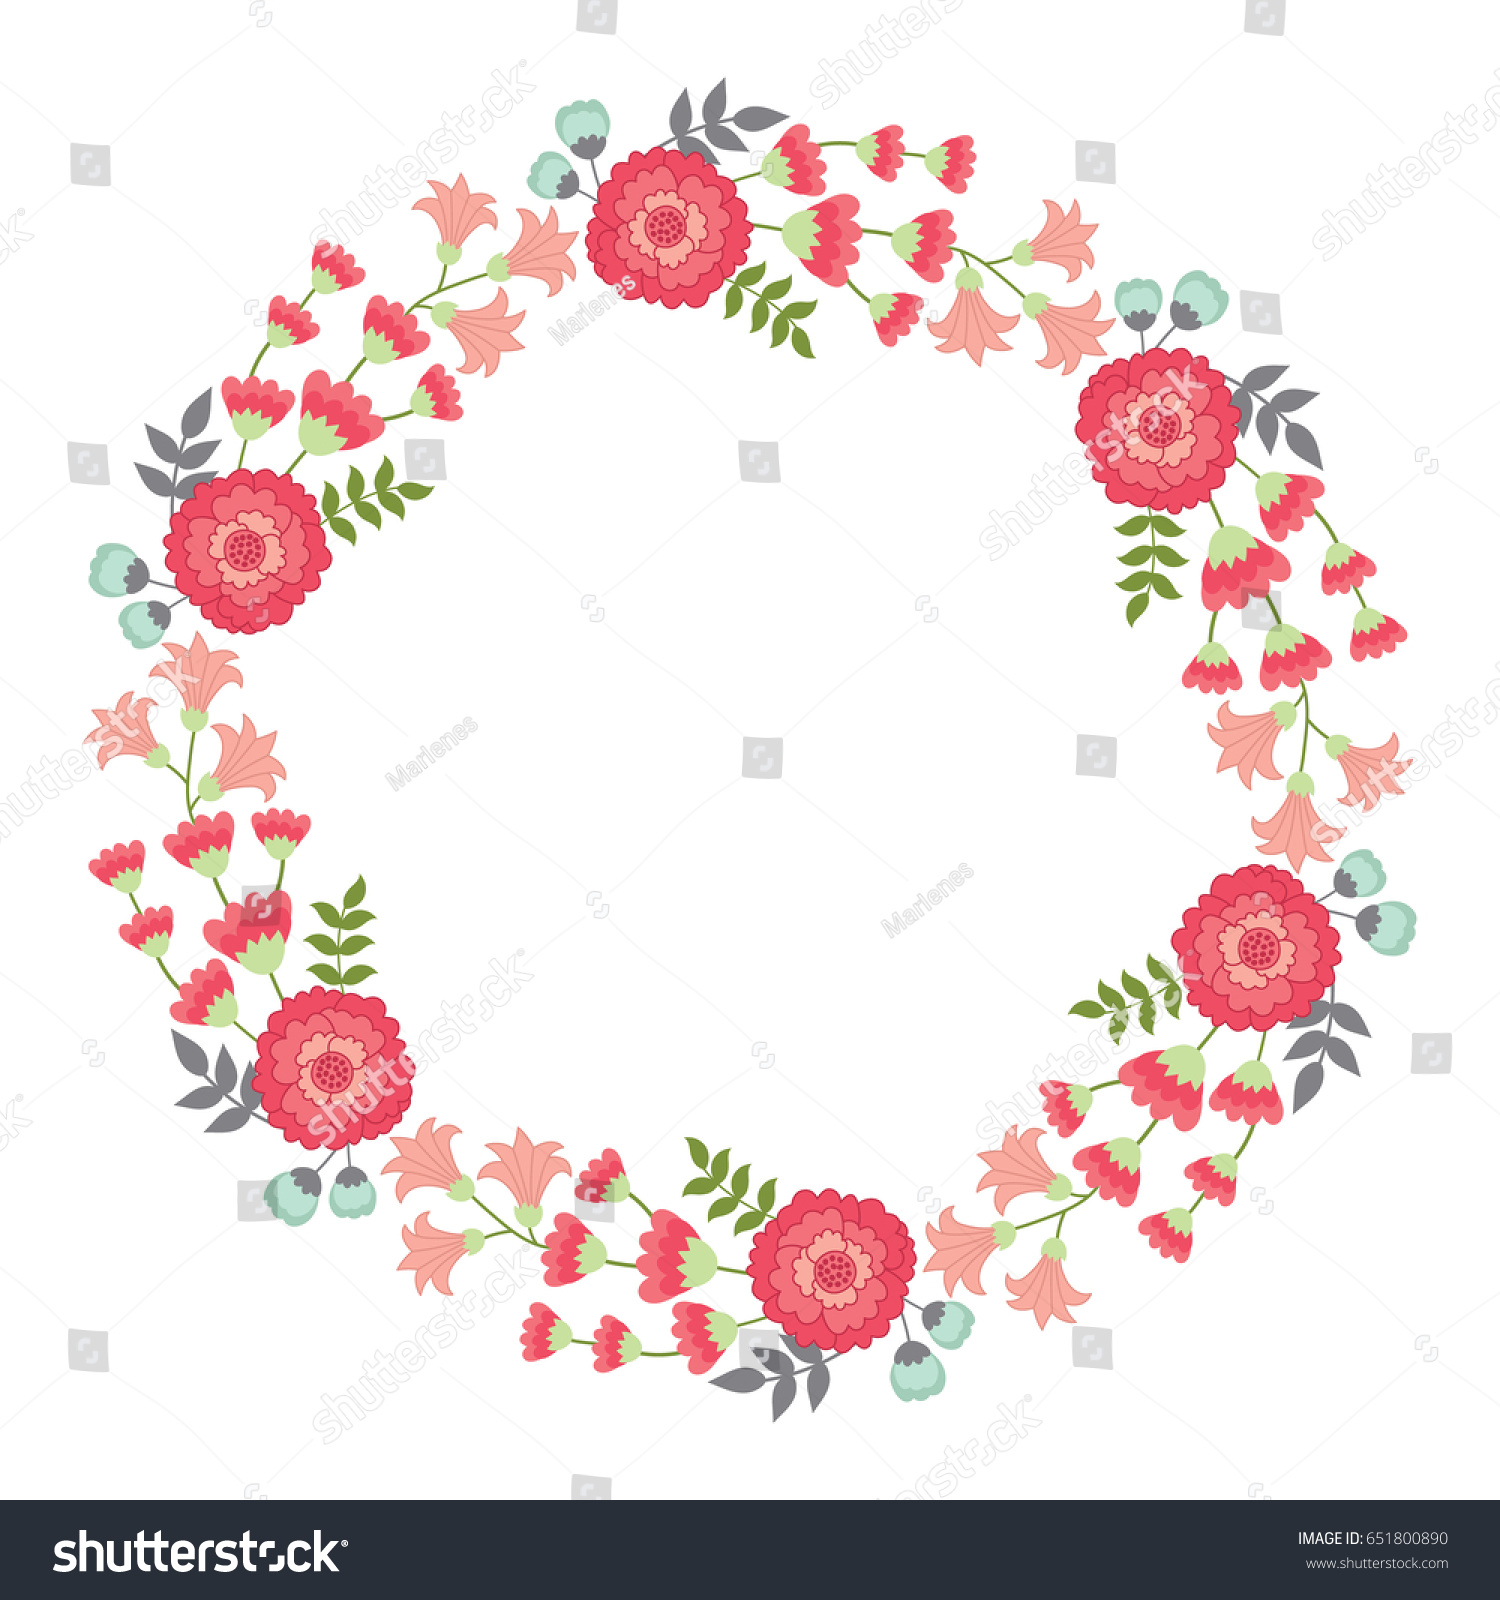 Vector Pink Floral Wreath Floral Wreath Stock Vector Royalty Free